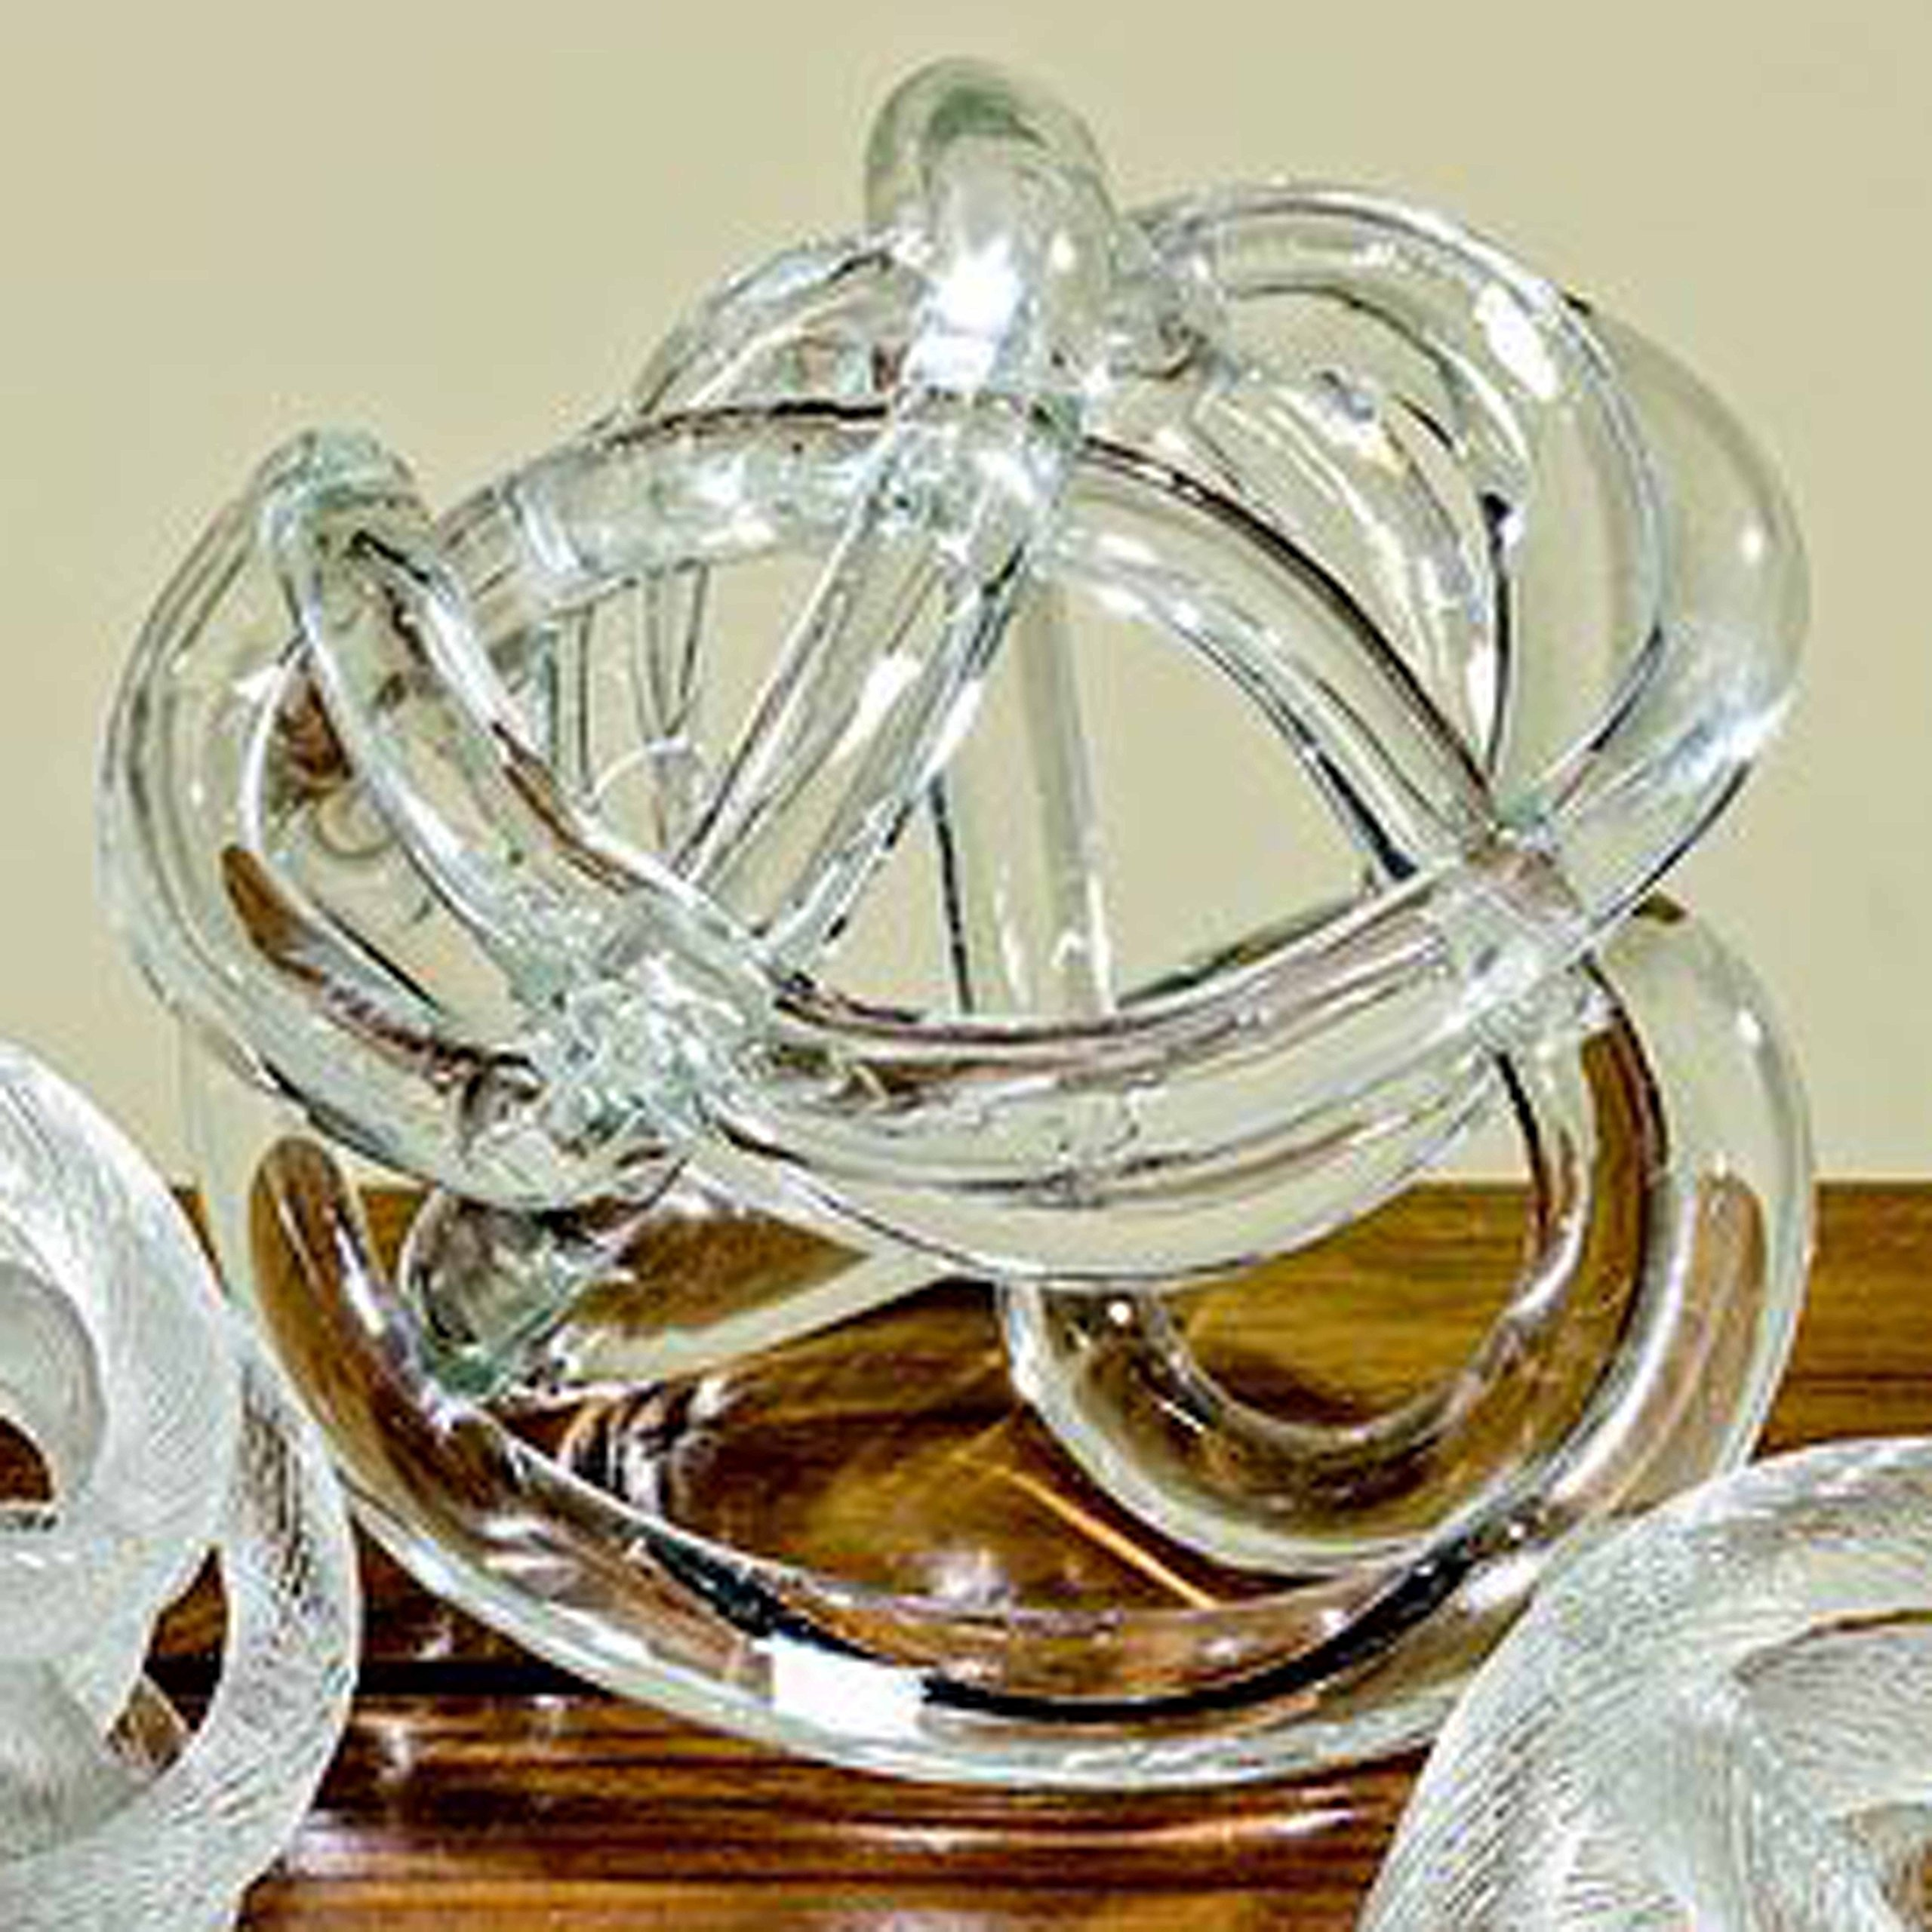 Whole House Worlds The Infinity Knot, Art Glass, Table Top Sculpture, Clear, Artisan Crafted, Hand Blown, 6 1/4 Inches, By WHW